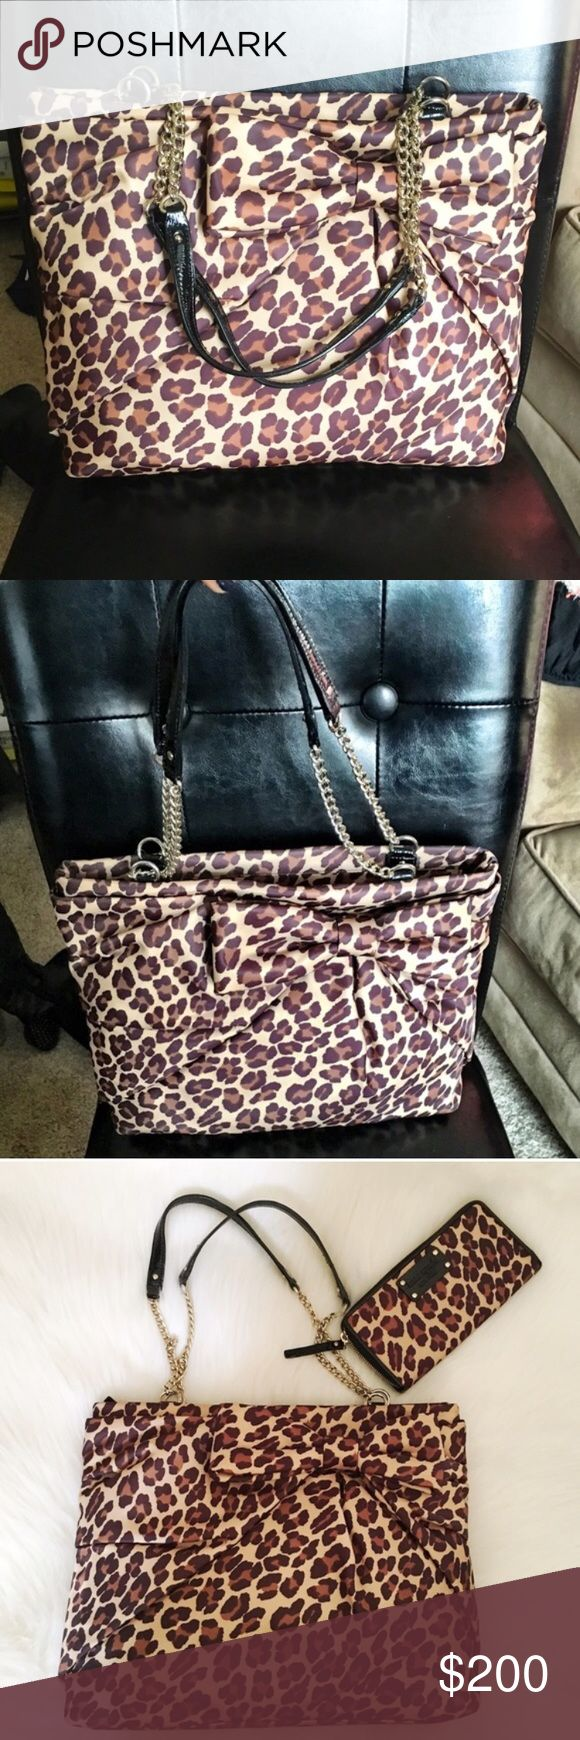 "Kate Spade Nylon Leopard Print Bag NWOT - Kate Spade Leopard print nylon bag. Never used, perfect condition! All original packaging inside with dustbag. Adorable bow detail on front. Black patent leather straps with gold chain hardware. The perfect material - so difficult to get dirty! Lots of room inside. Measures 14.5""X11"". Matching NWT wallet sold separately but can be bundled together for 15% off. No modeling/trades. kate spade Bags Totes"